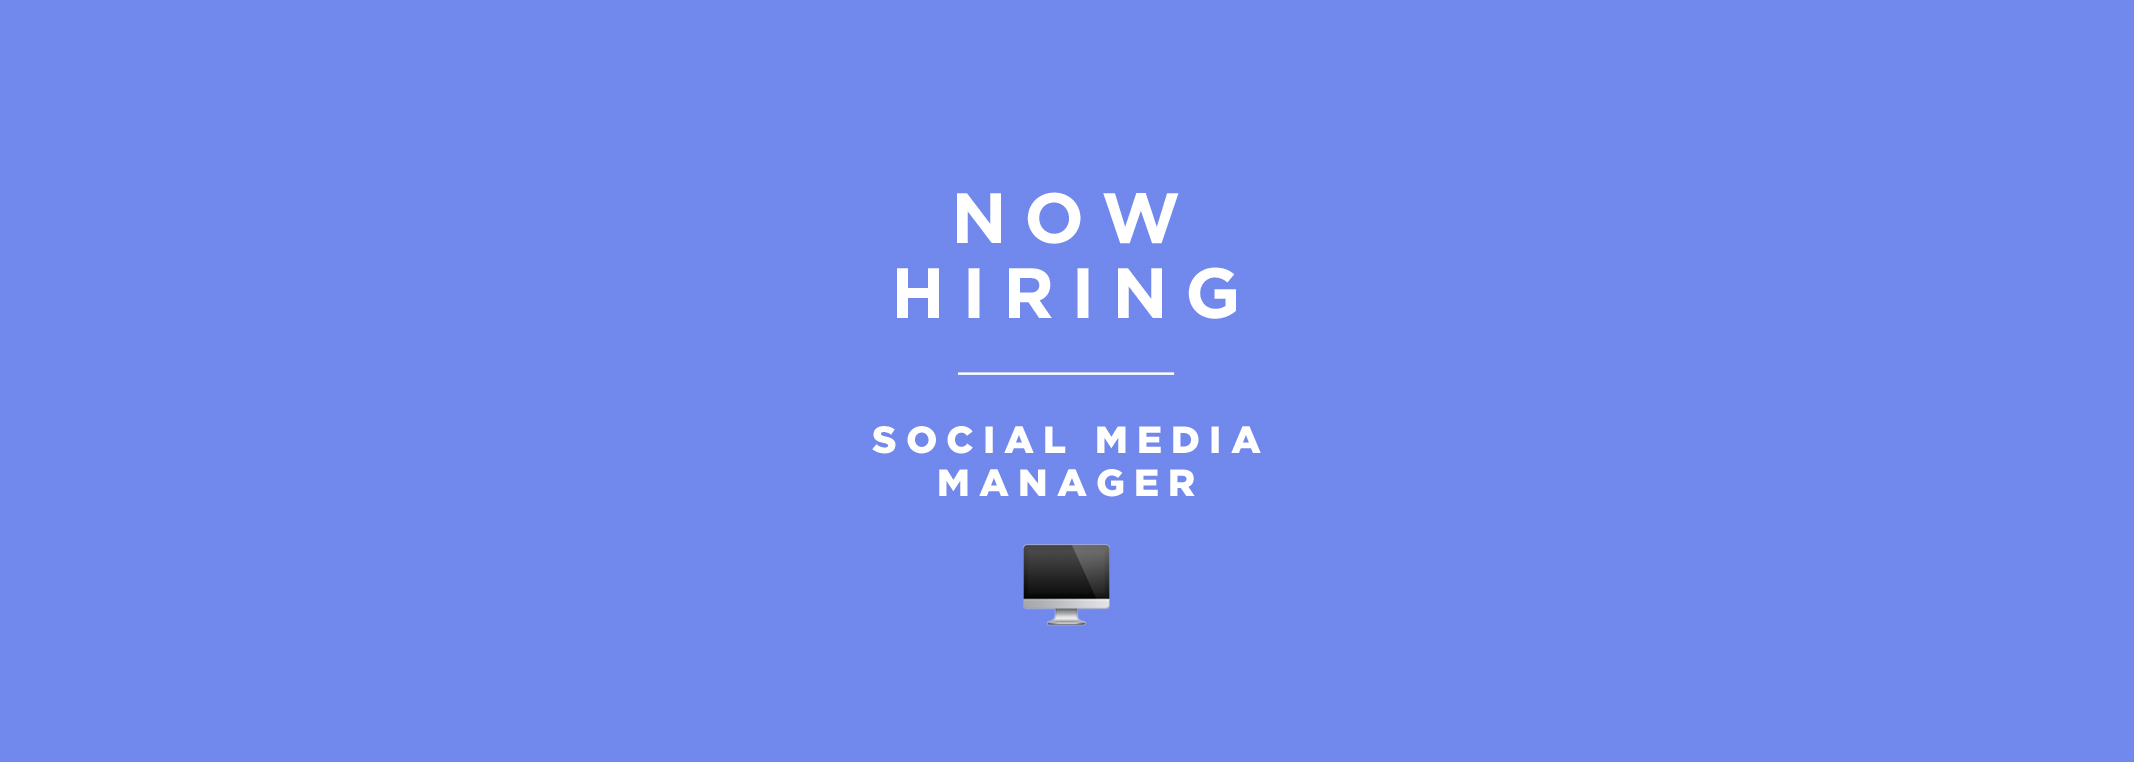 Now Hiring - Social Media Manager